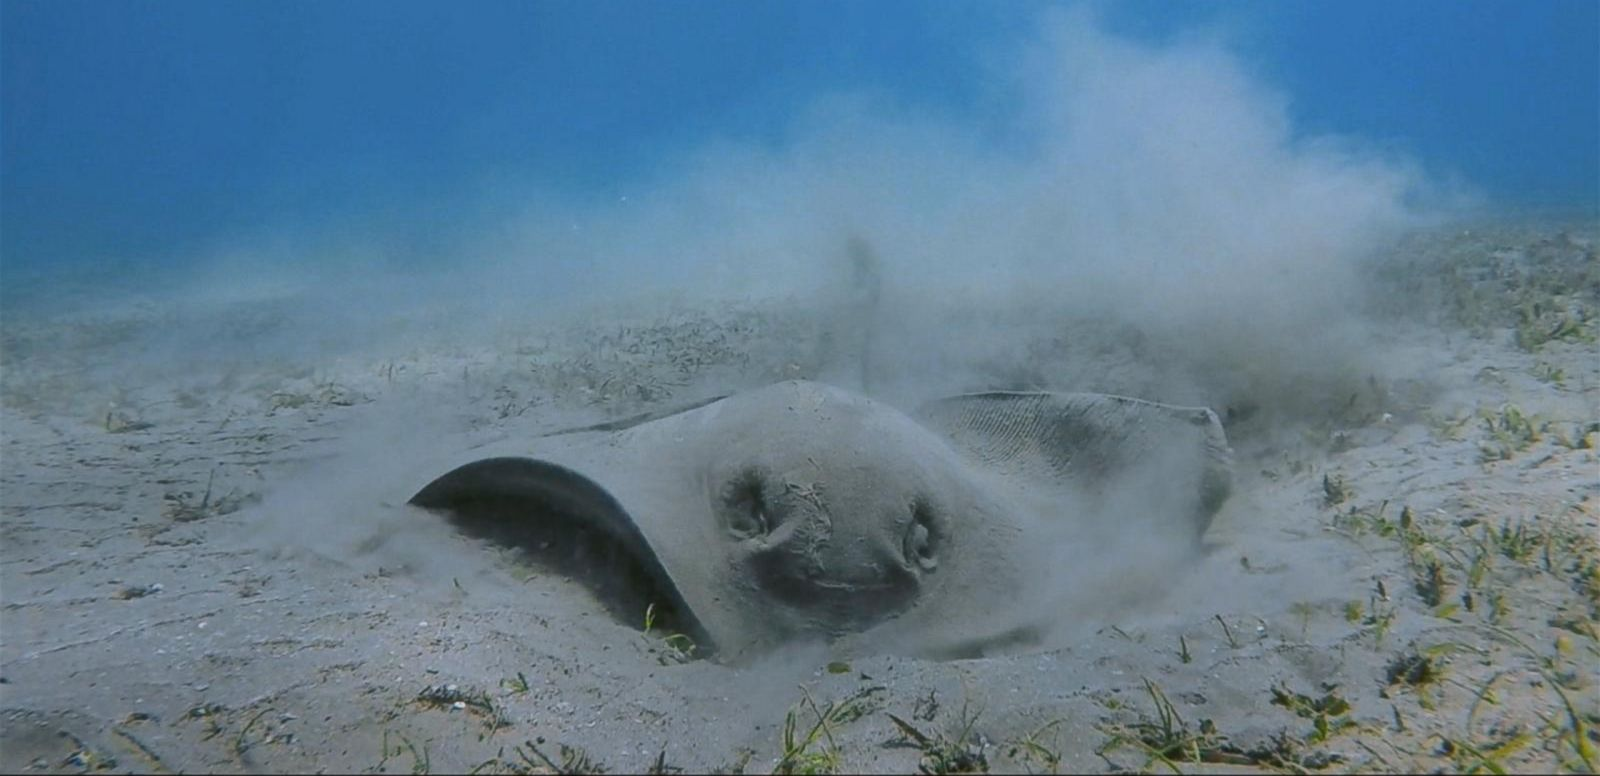 VIDEO: Beachgoers Warned to Look Out for Sting Rays